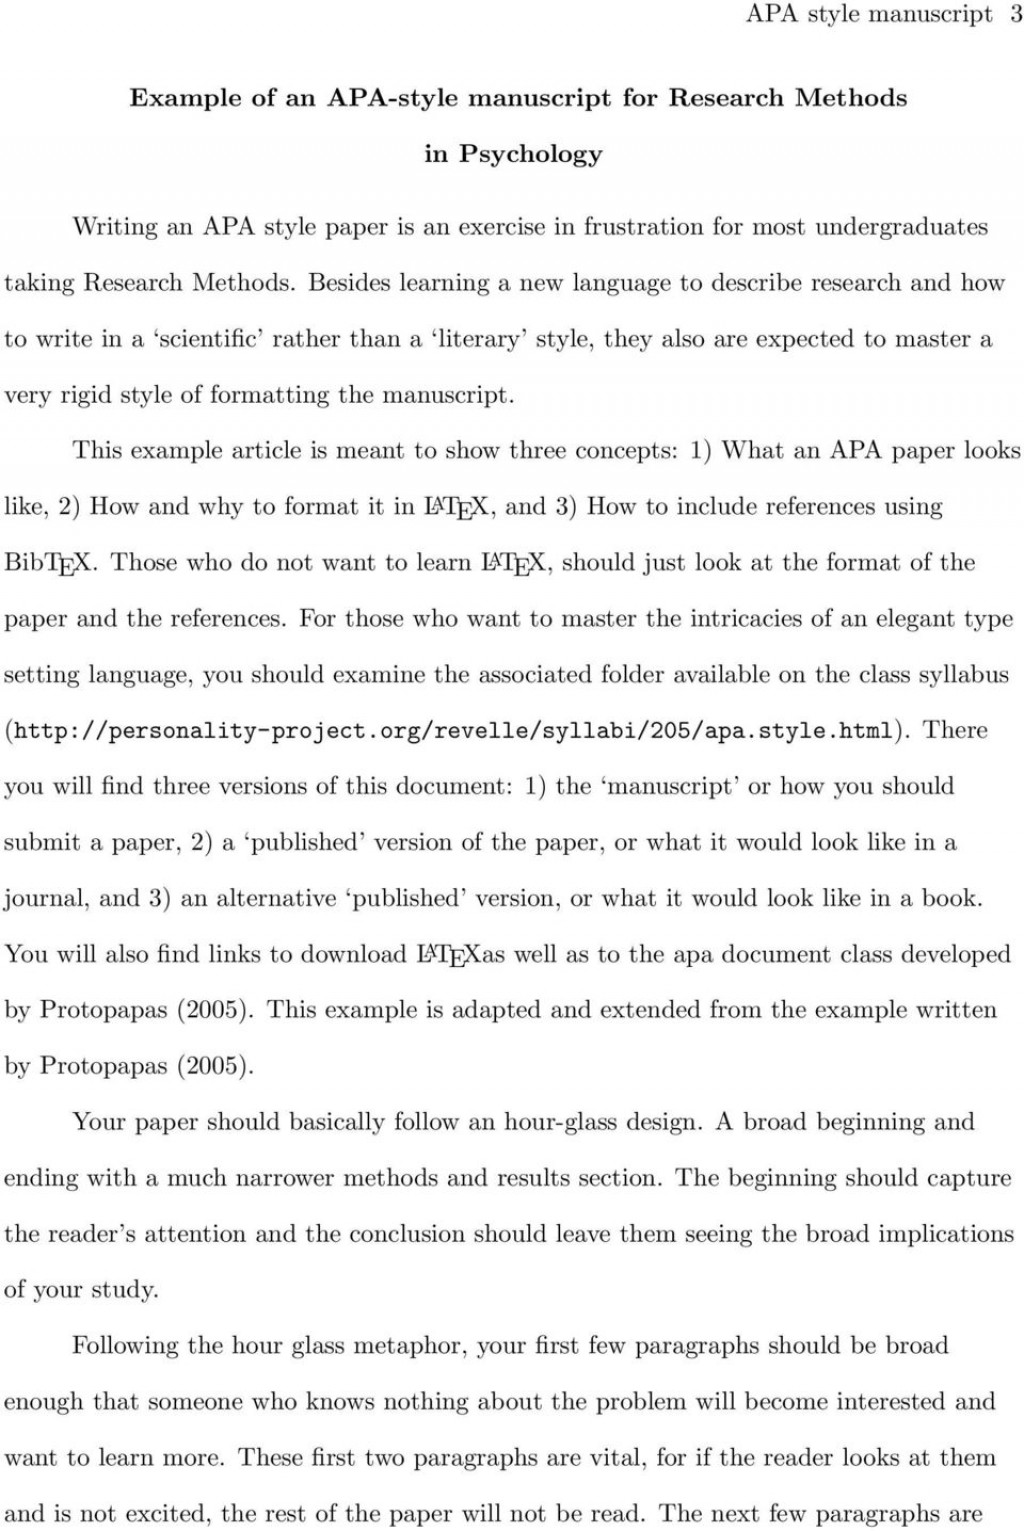 015 Methods Example For Research Paper Page 3 Breathtaking Of Materials And Section A Writing Method Results Large